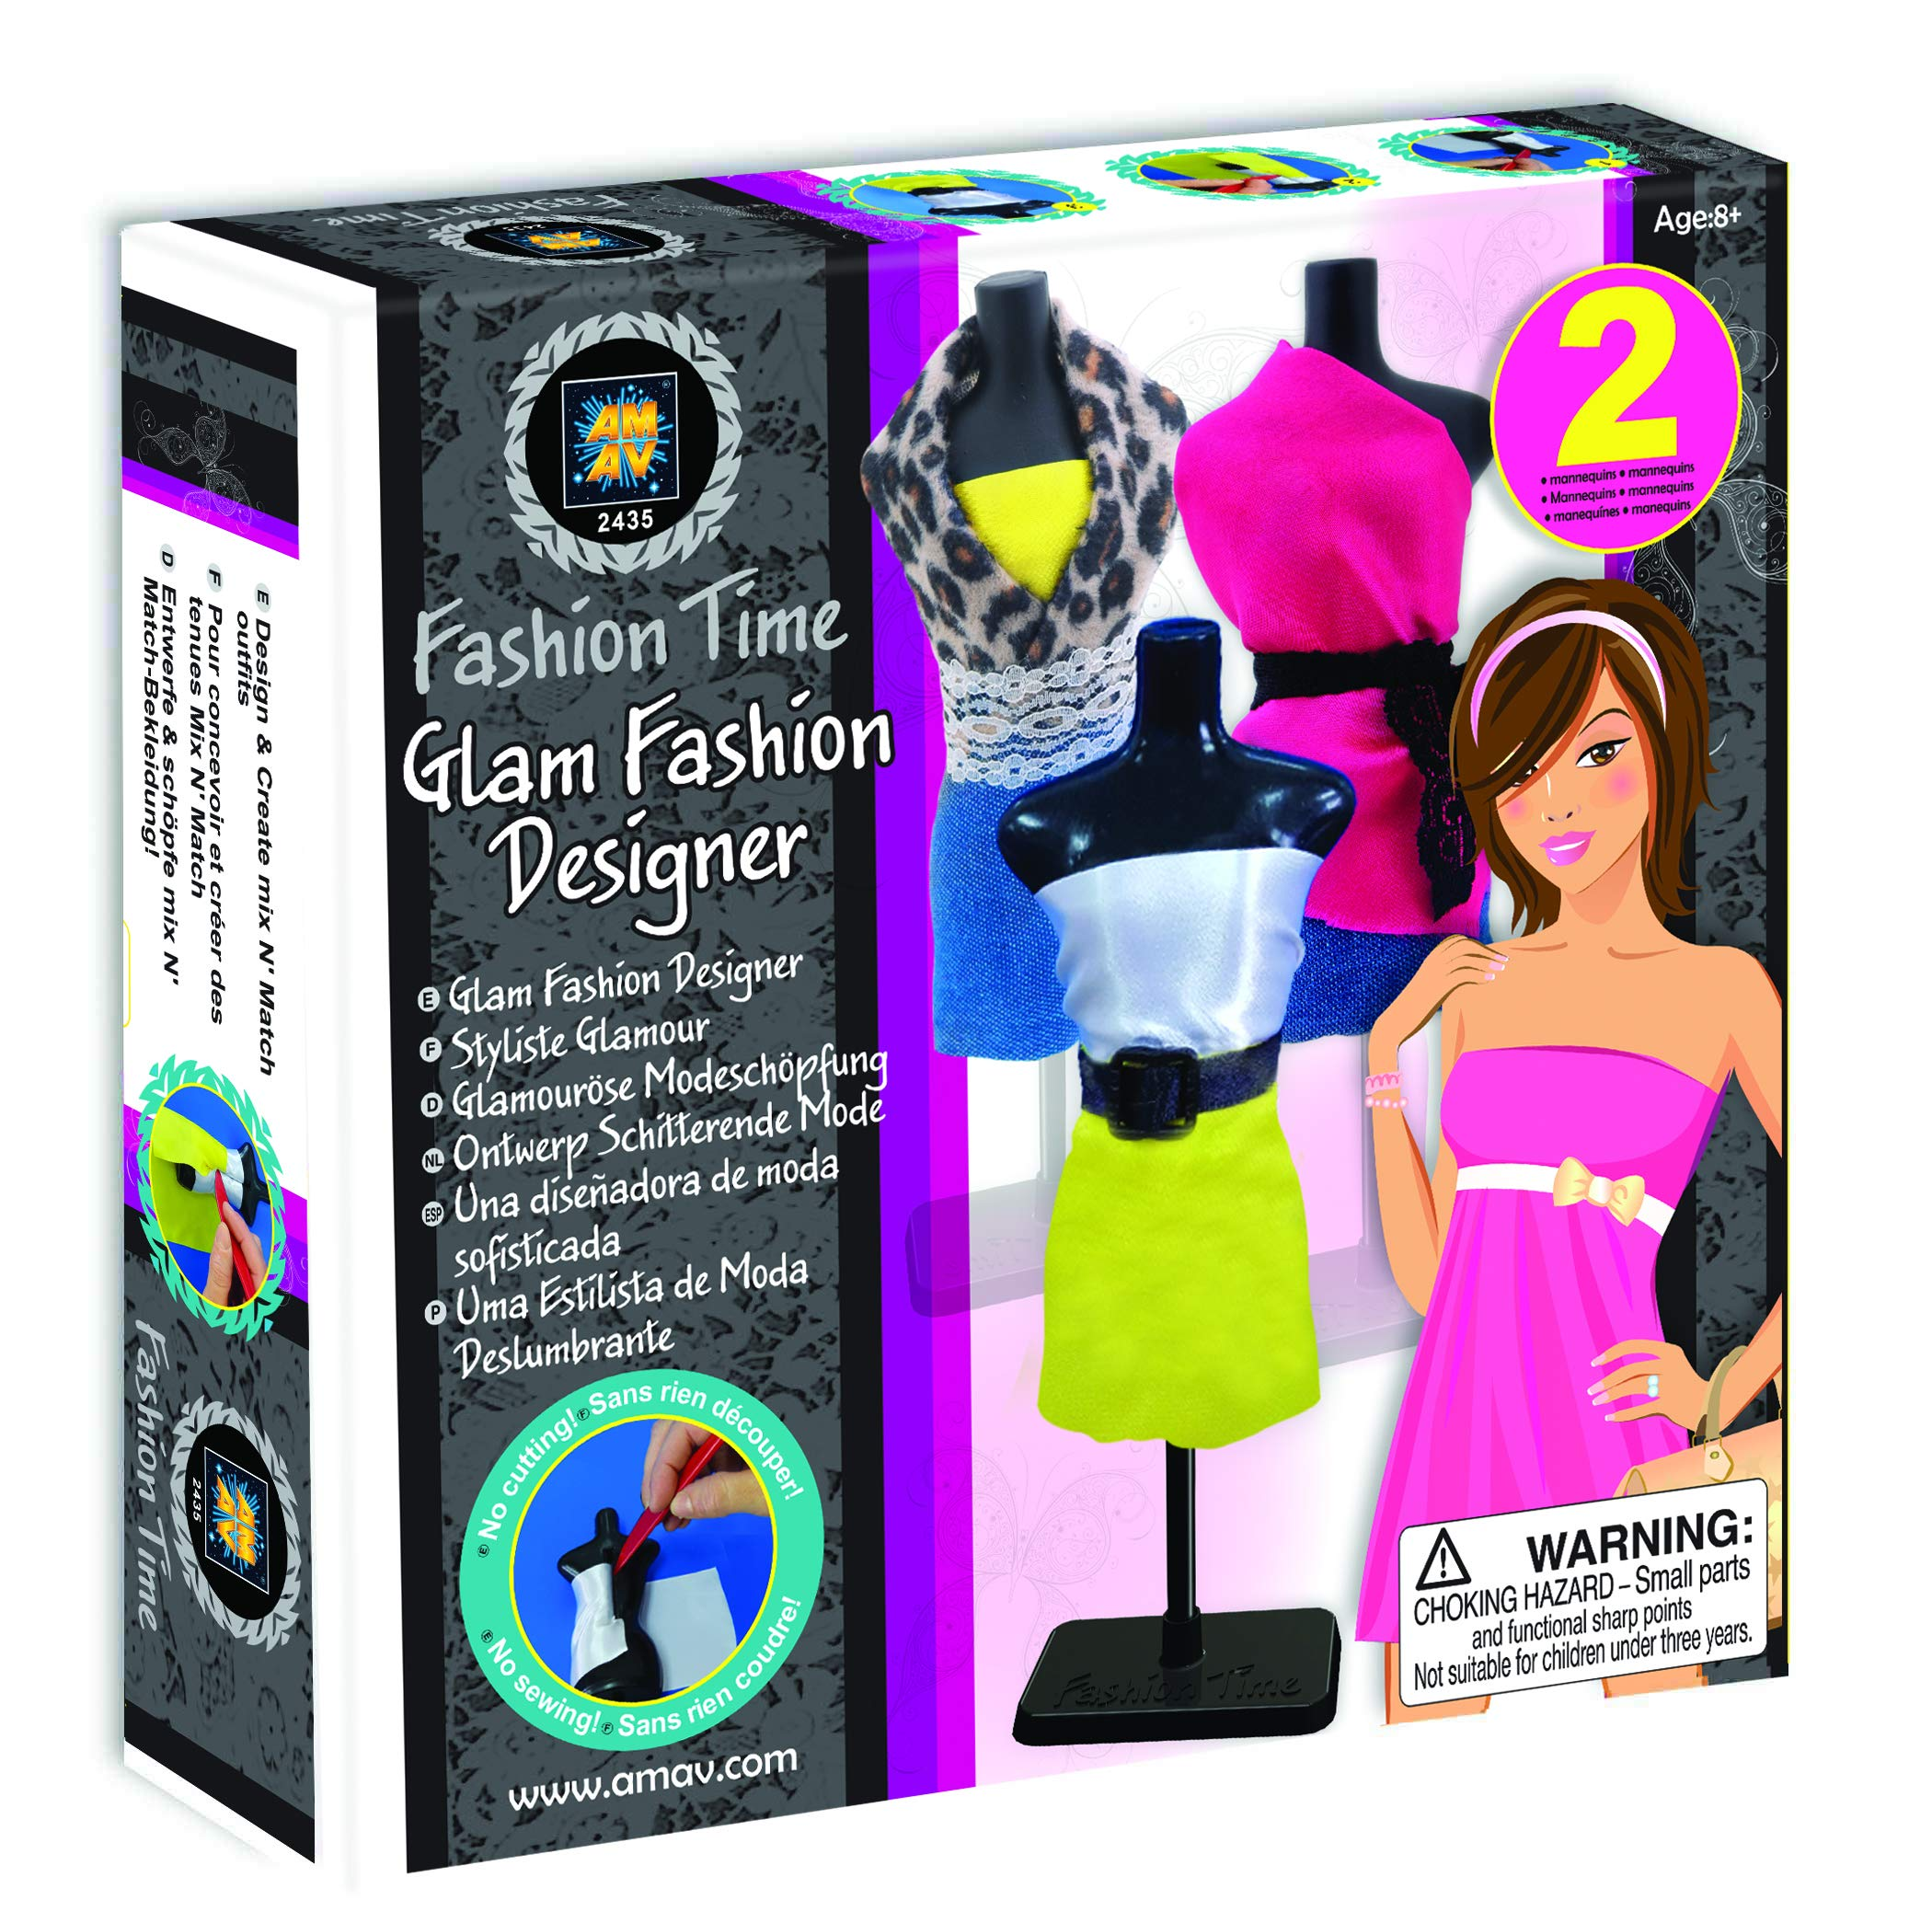 Mav Toys Fashion Time Glam Fashion Designer -DIY, Create Mix & Match Outfits & Fashion Creations - Easy to Use, No Cutting or Sewing - Sparks Creativity & Style for Fashion Lovers